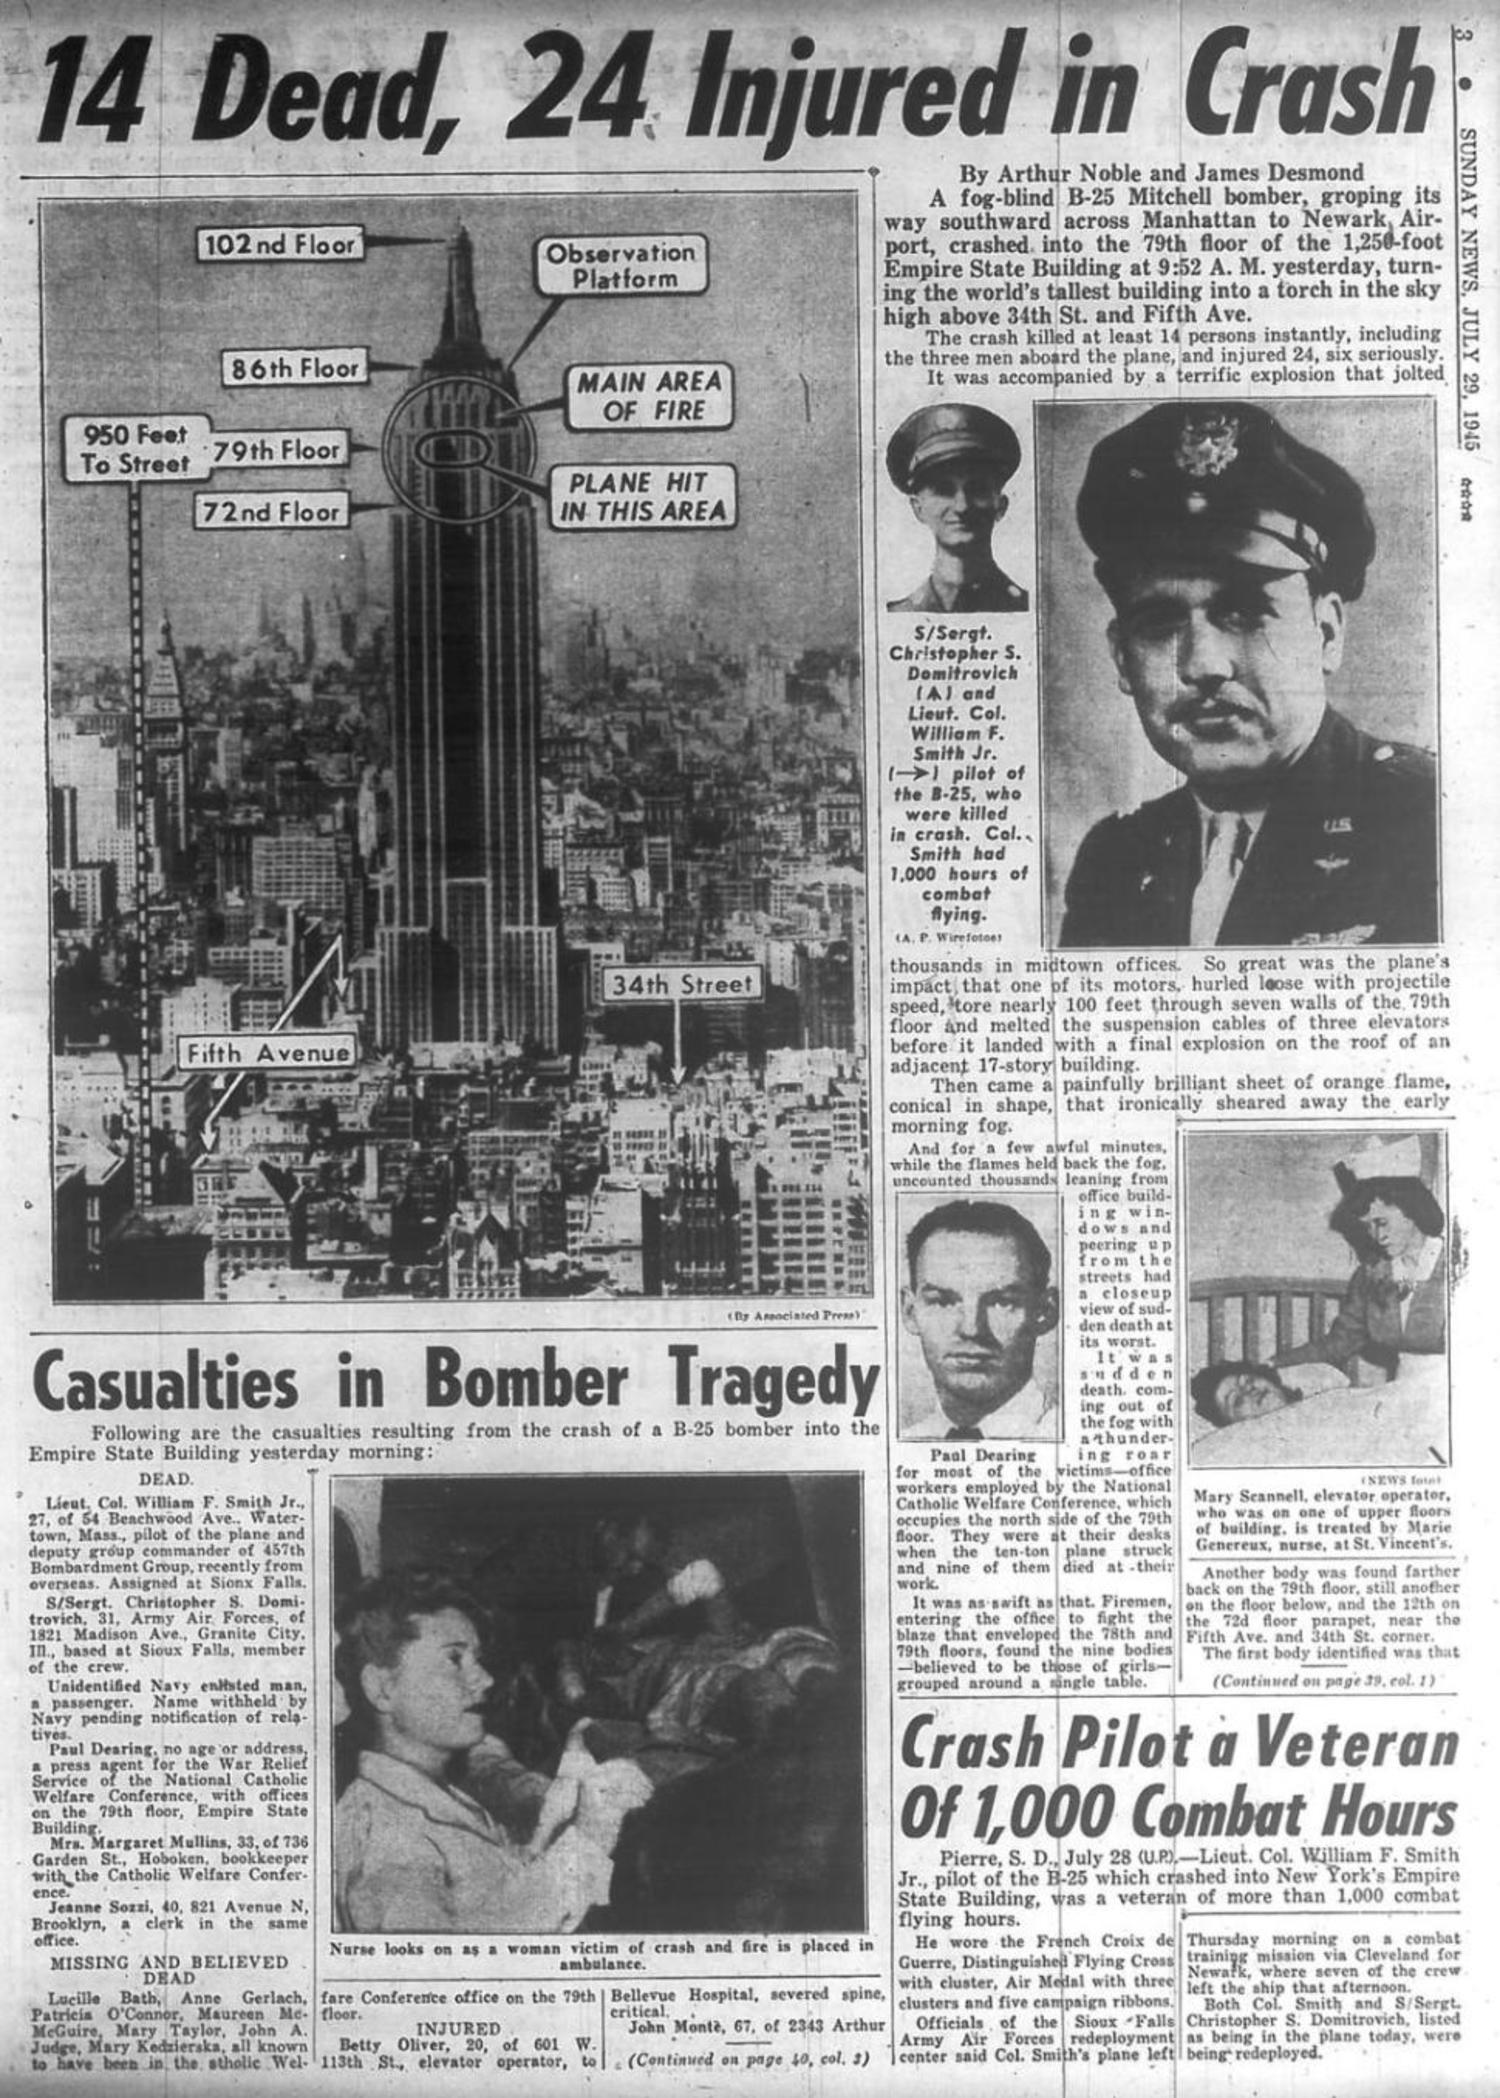 New york Daily News covers the B-25 Empire State Building crash on July 28, 1945.